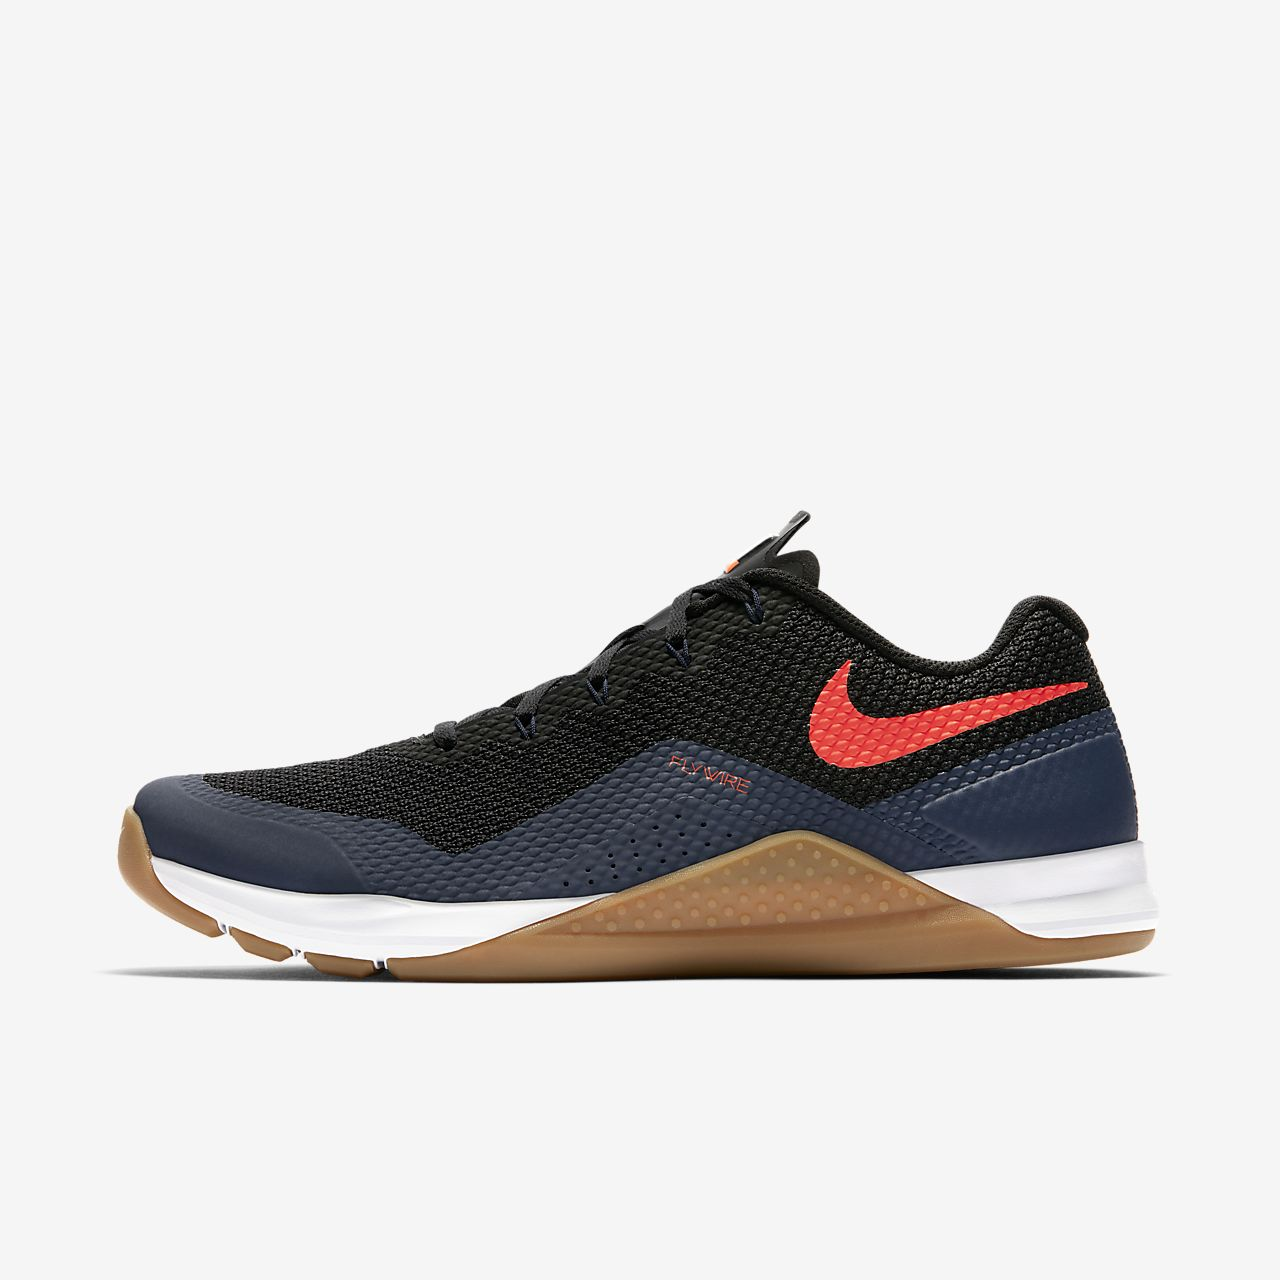 timeless design b41c3 8ab6b chaussure musculation nike vendre